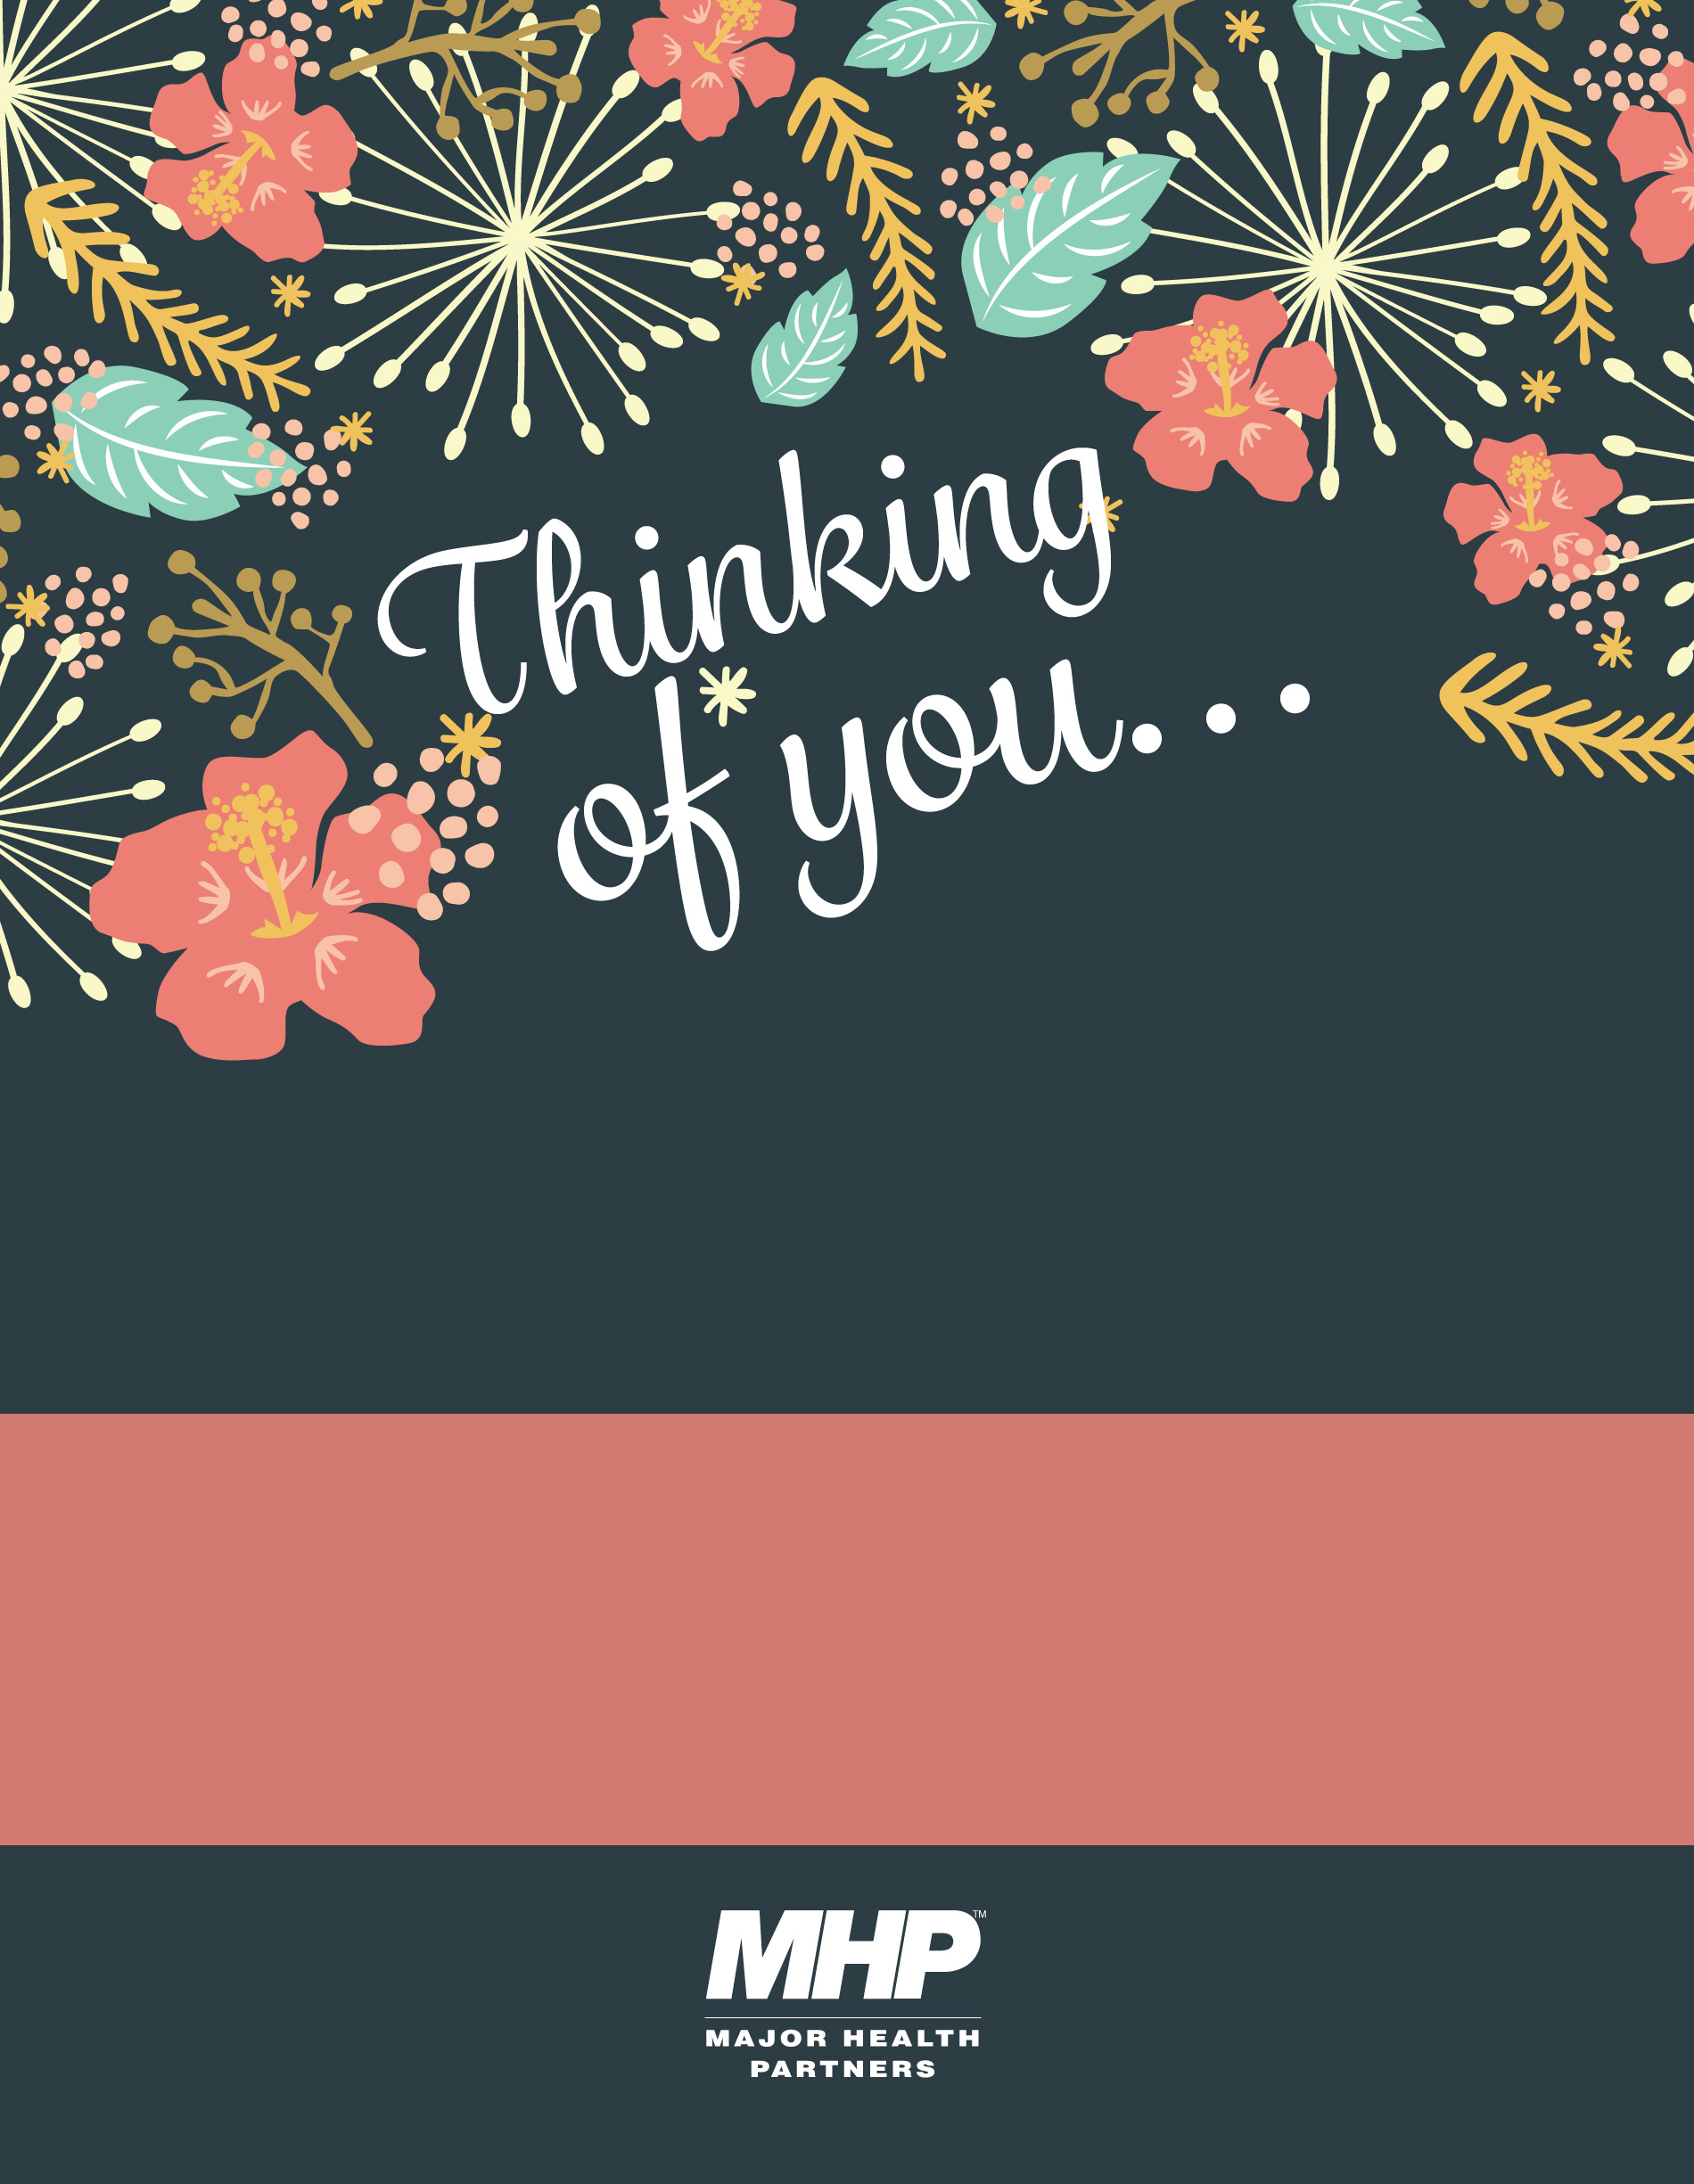 Thinking of You Floral